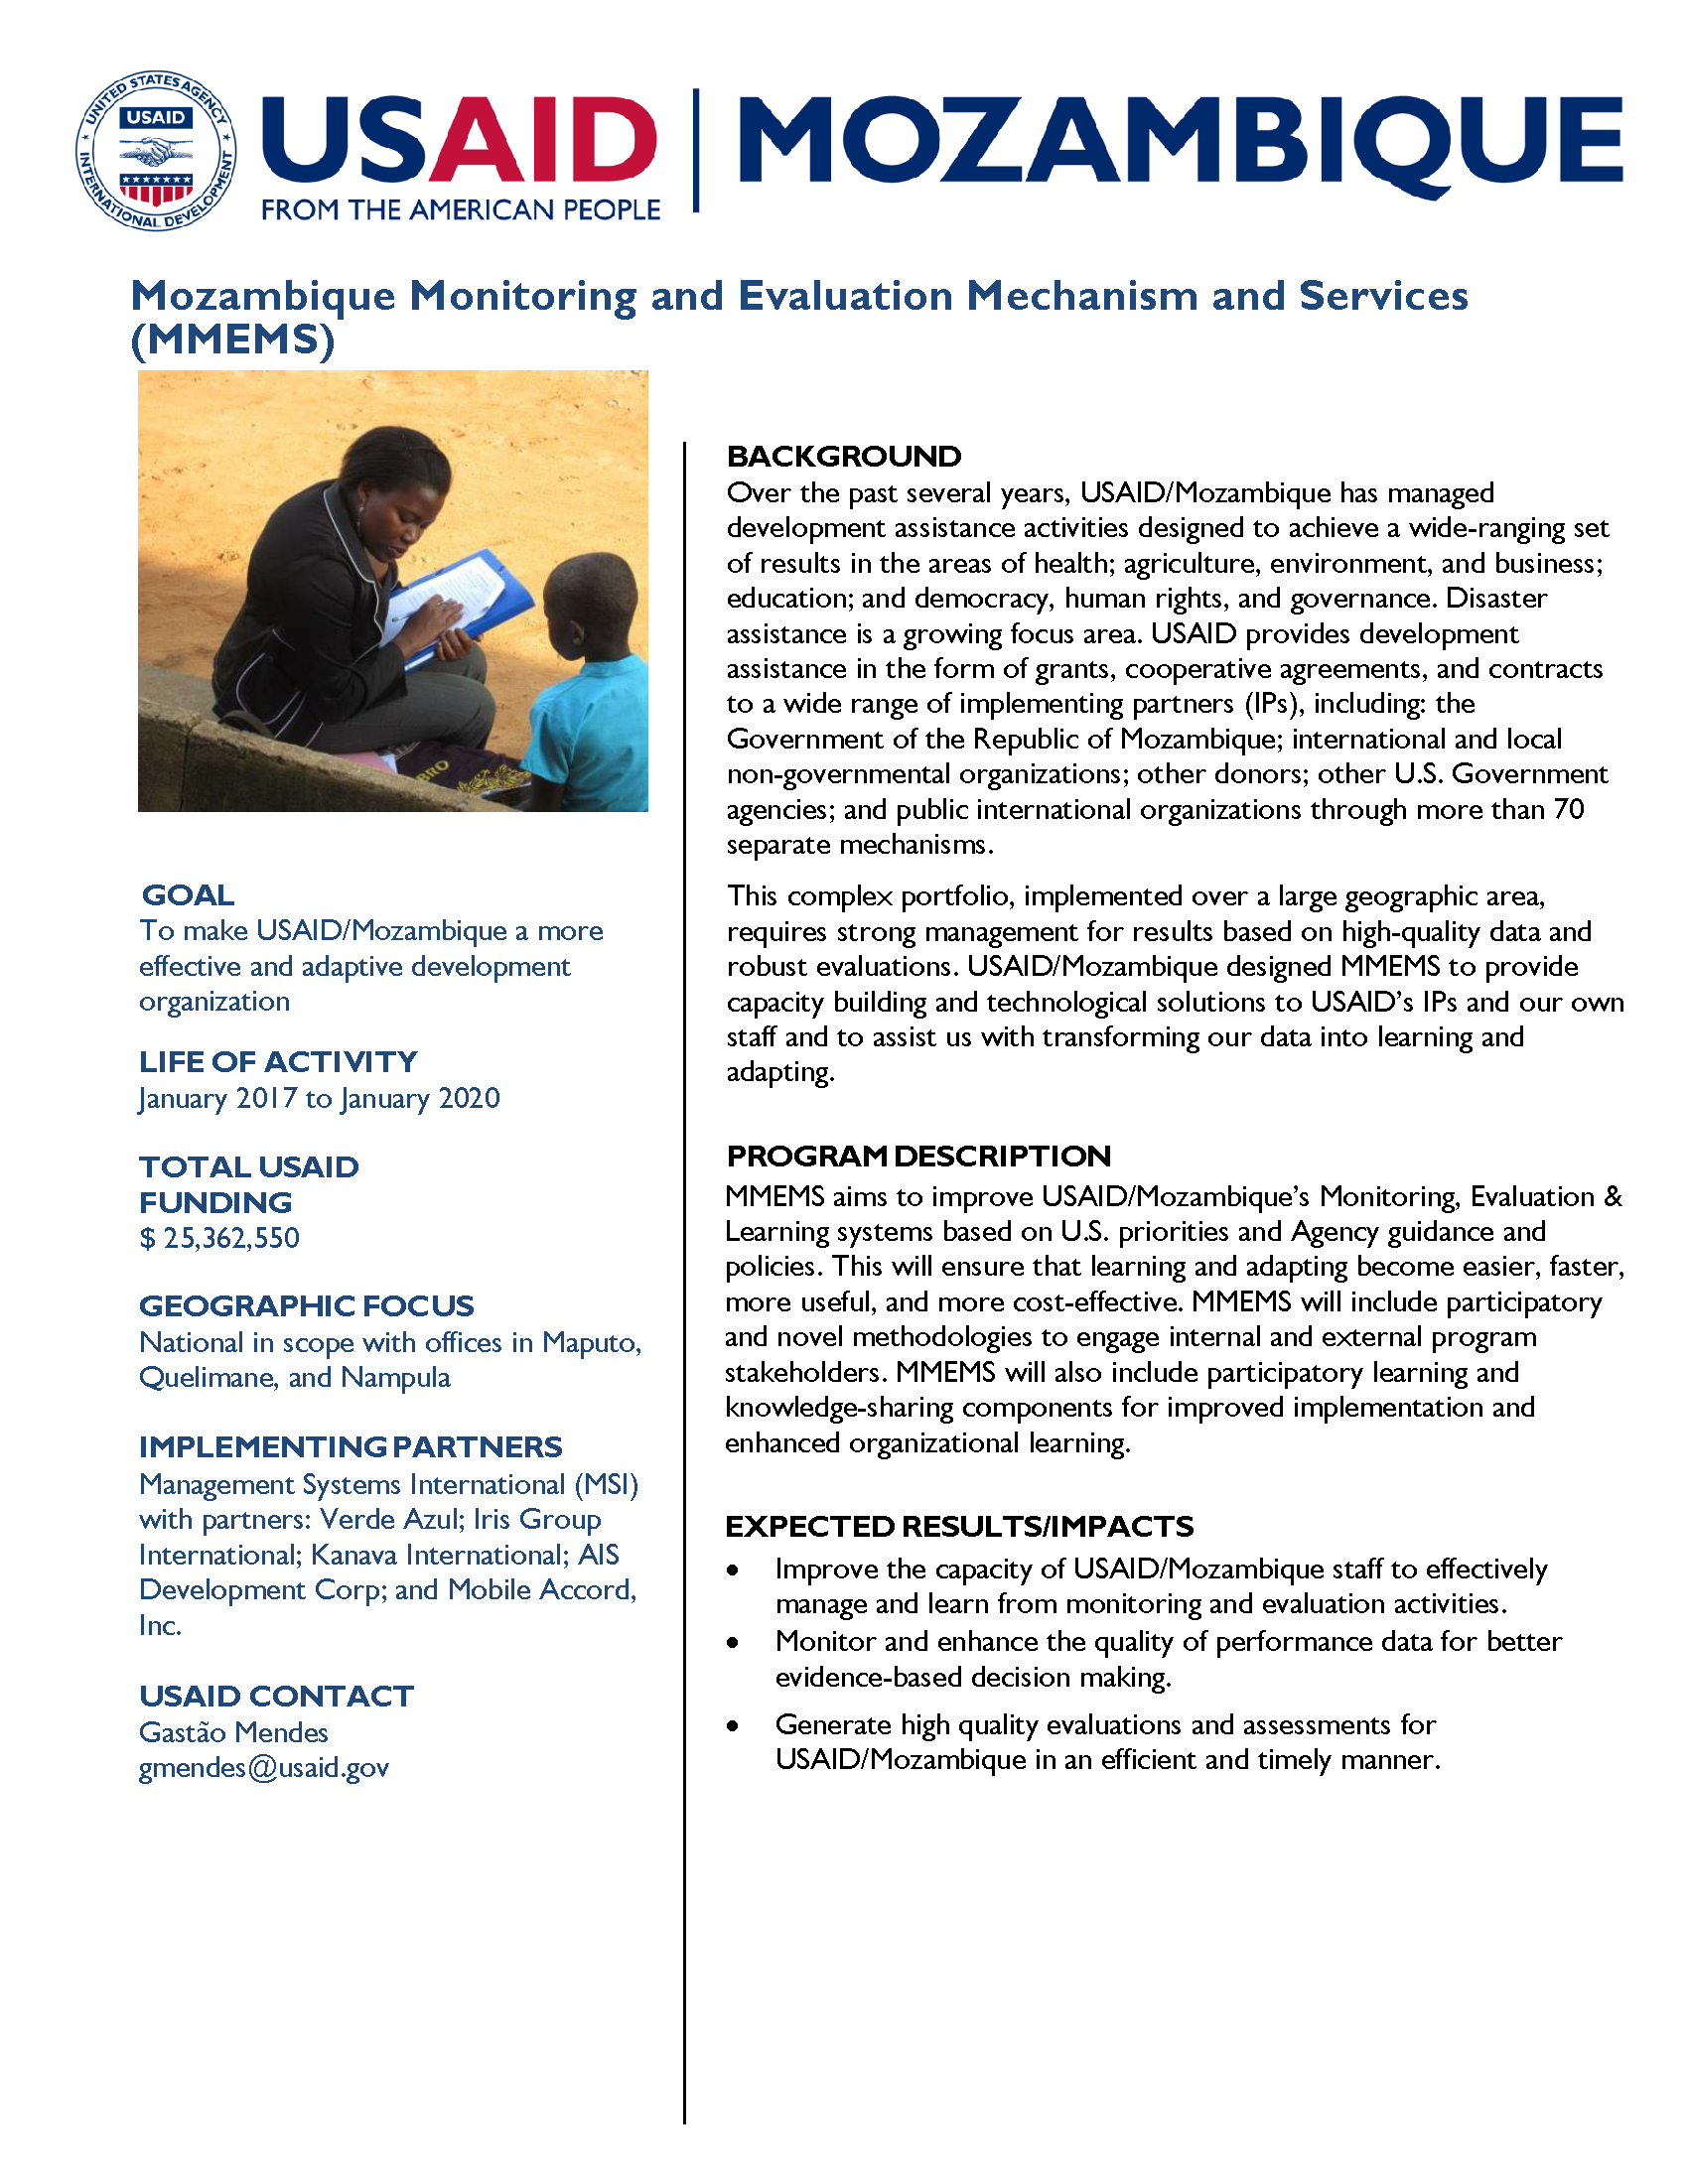 Mozambique Monitoring and Evaluation Mechanism and Services Fact Sheet